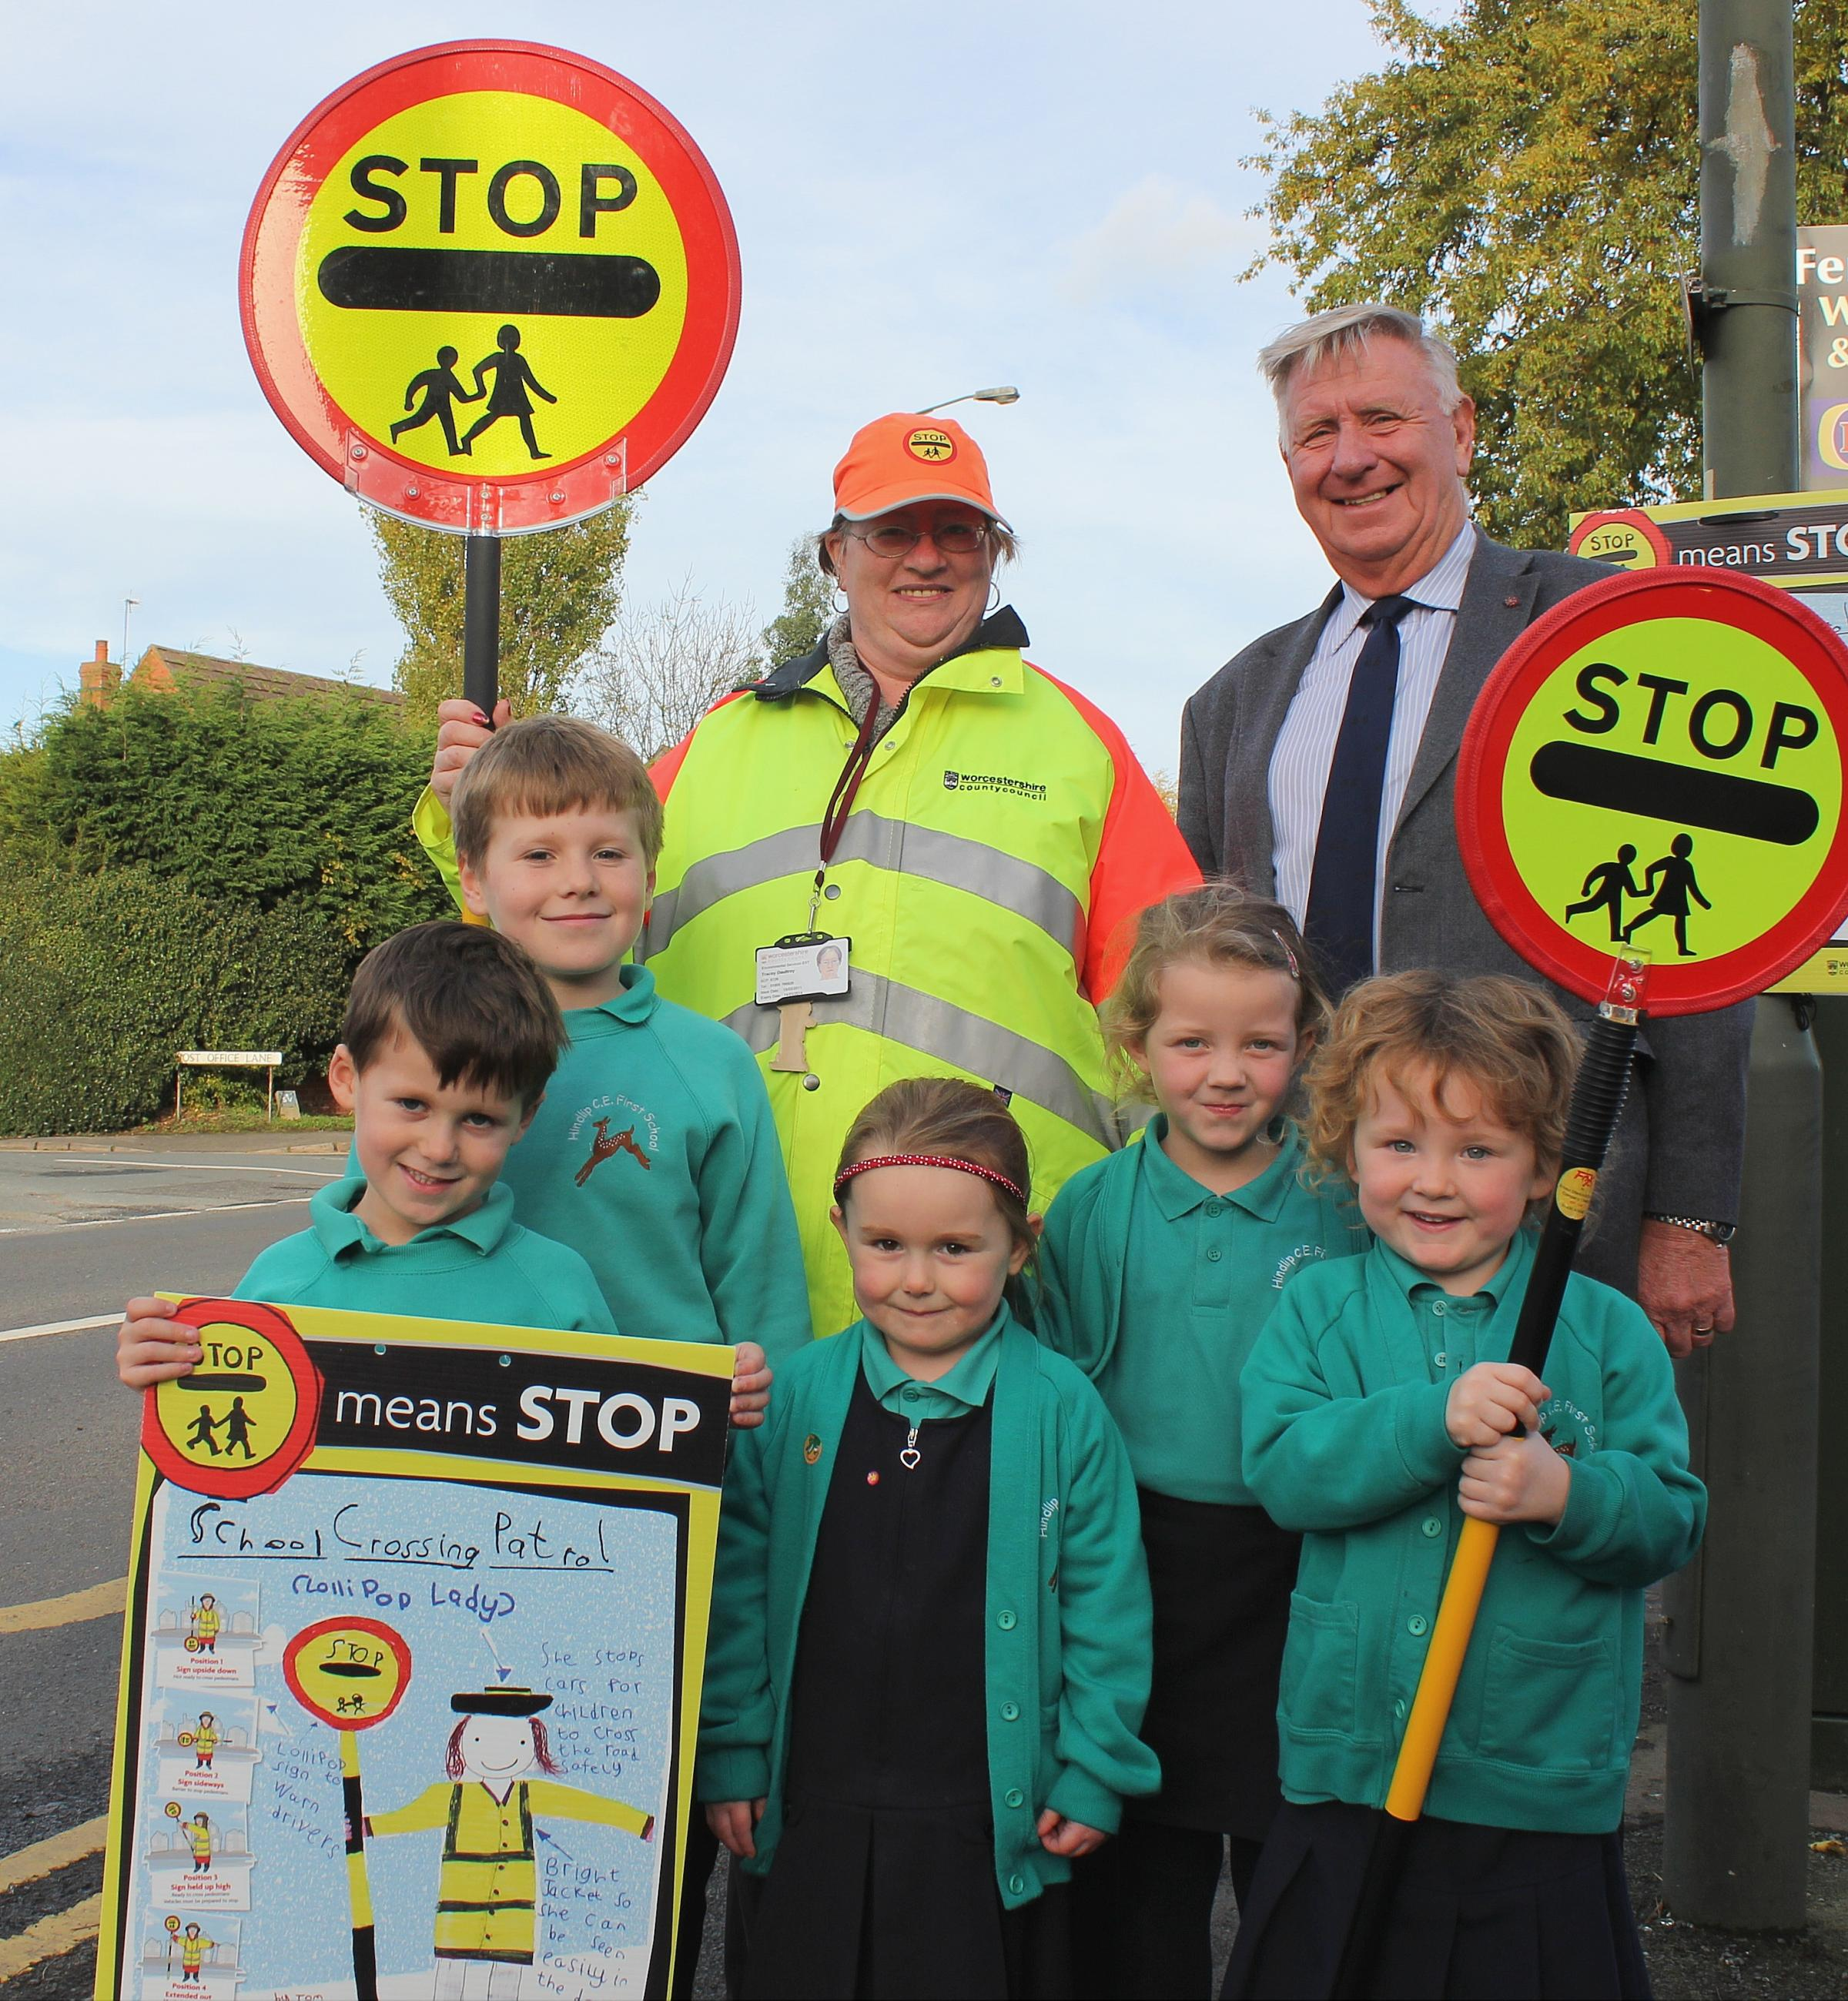 Cllr John Smith OBE, County Council Cabinet Member joins Hindlip CE First School's School Crossing Patrol, Tracey Daultrey, and pupils (from left) Edward, Benjamin, Erin,  Beth and Holly. during last year's National Road Safety Week.